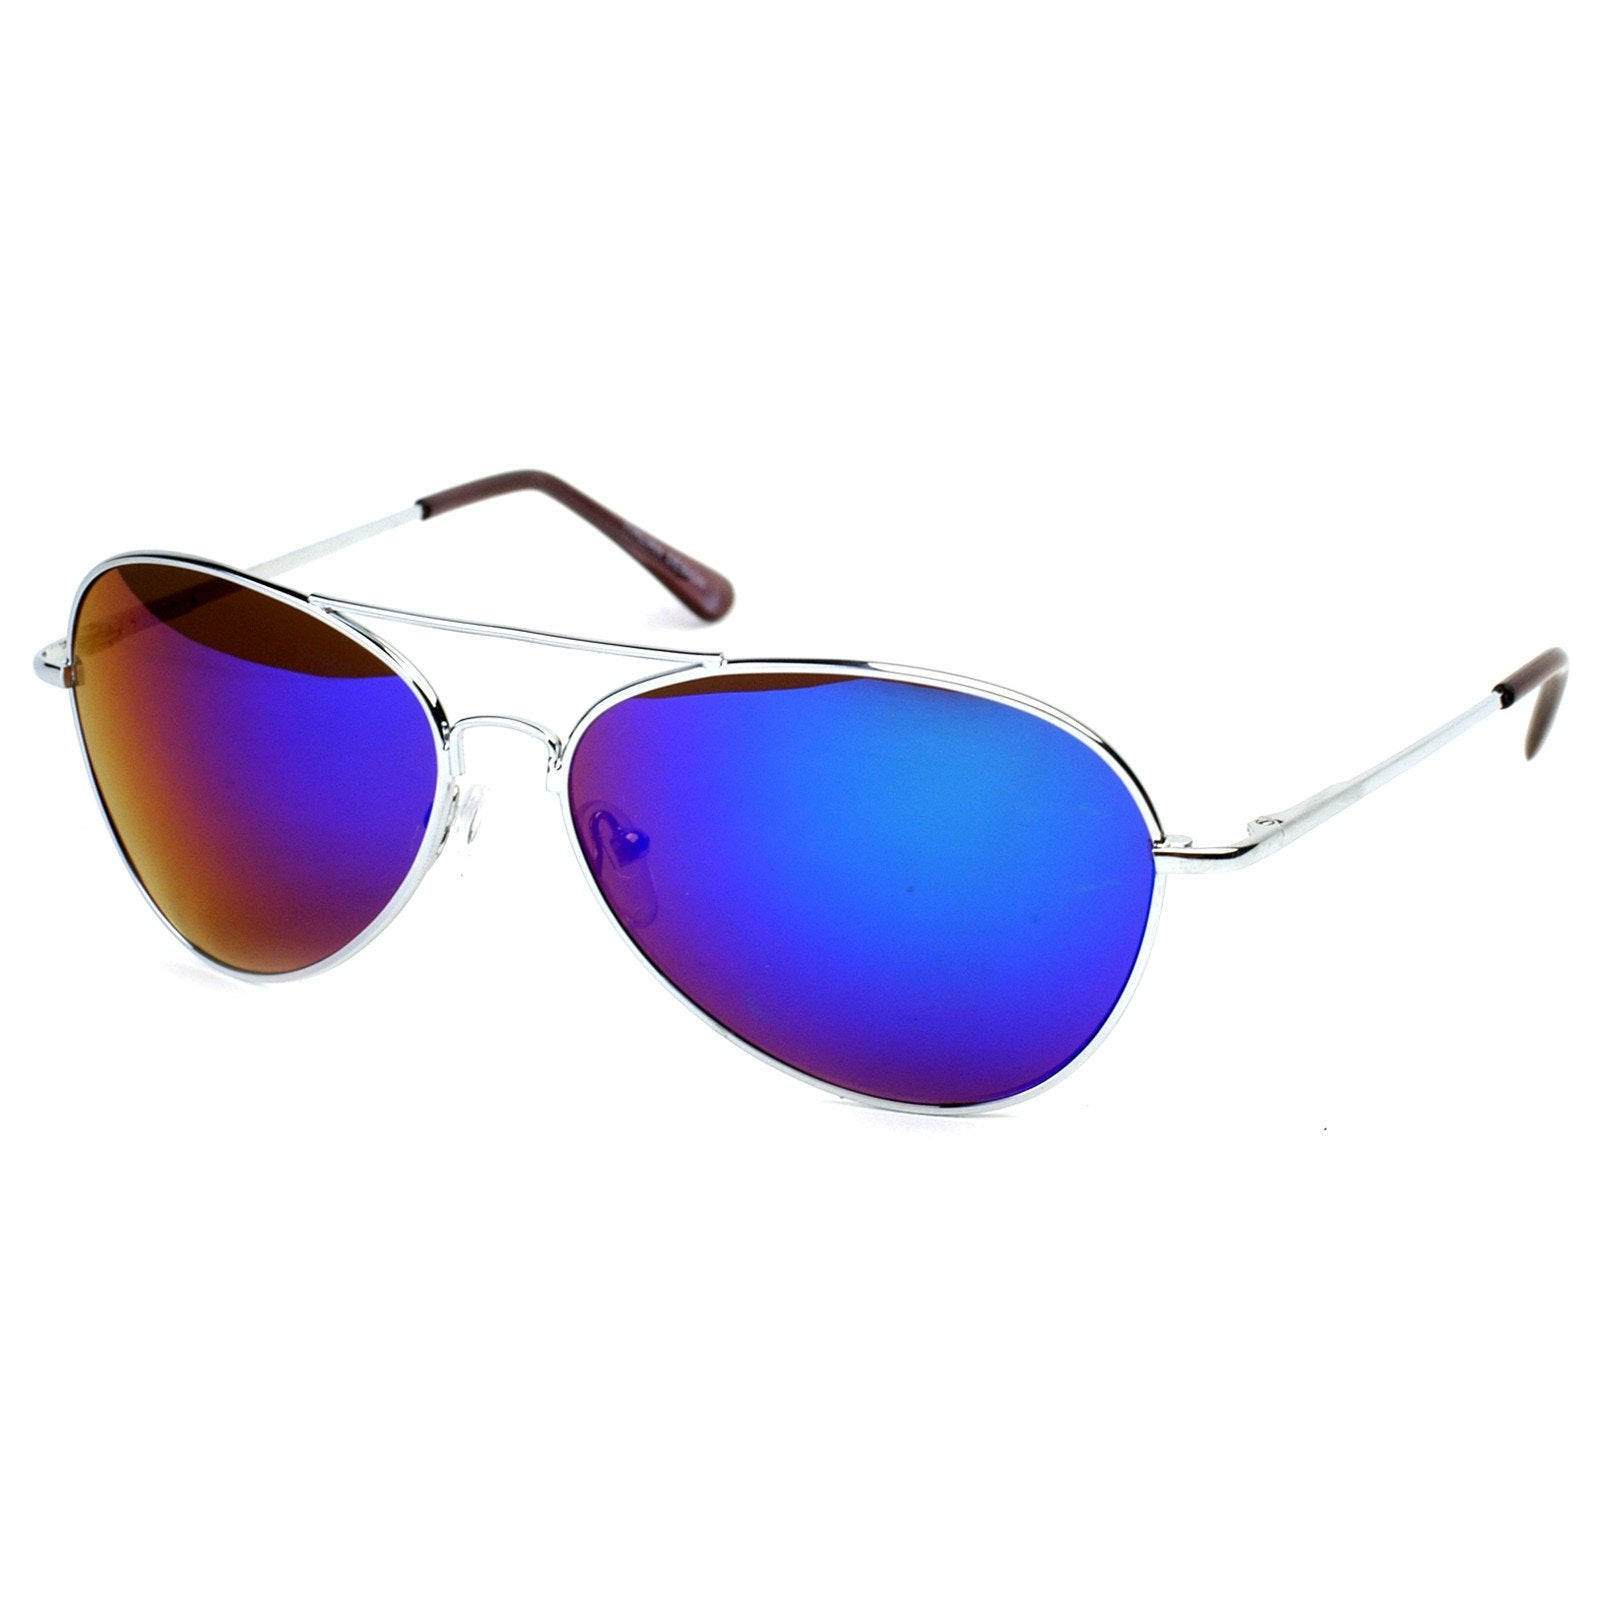 19a37f7519 Retro Flash Color Mirrored Lens Metal Aviator Sunglasses 1485 - zeroUV